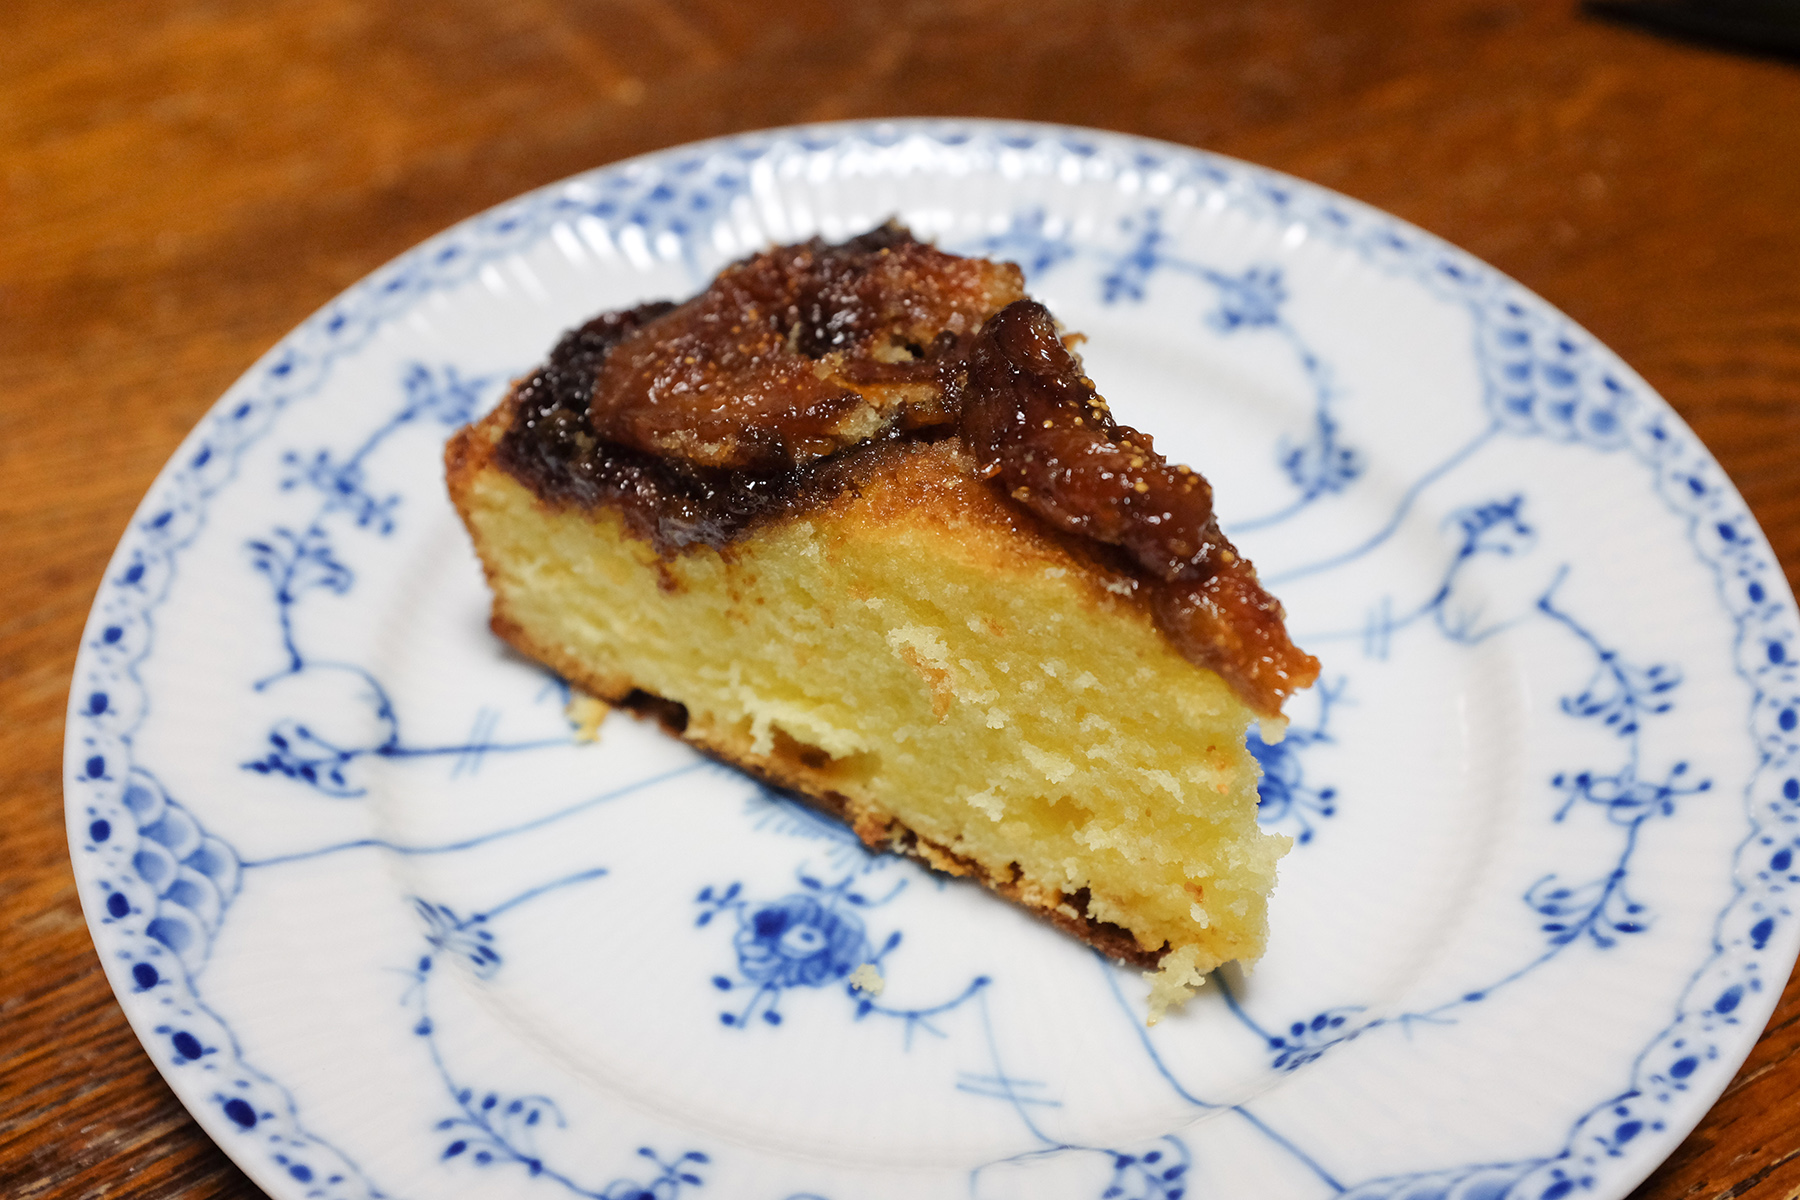 slice of cake with fig topping